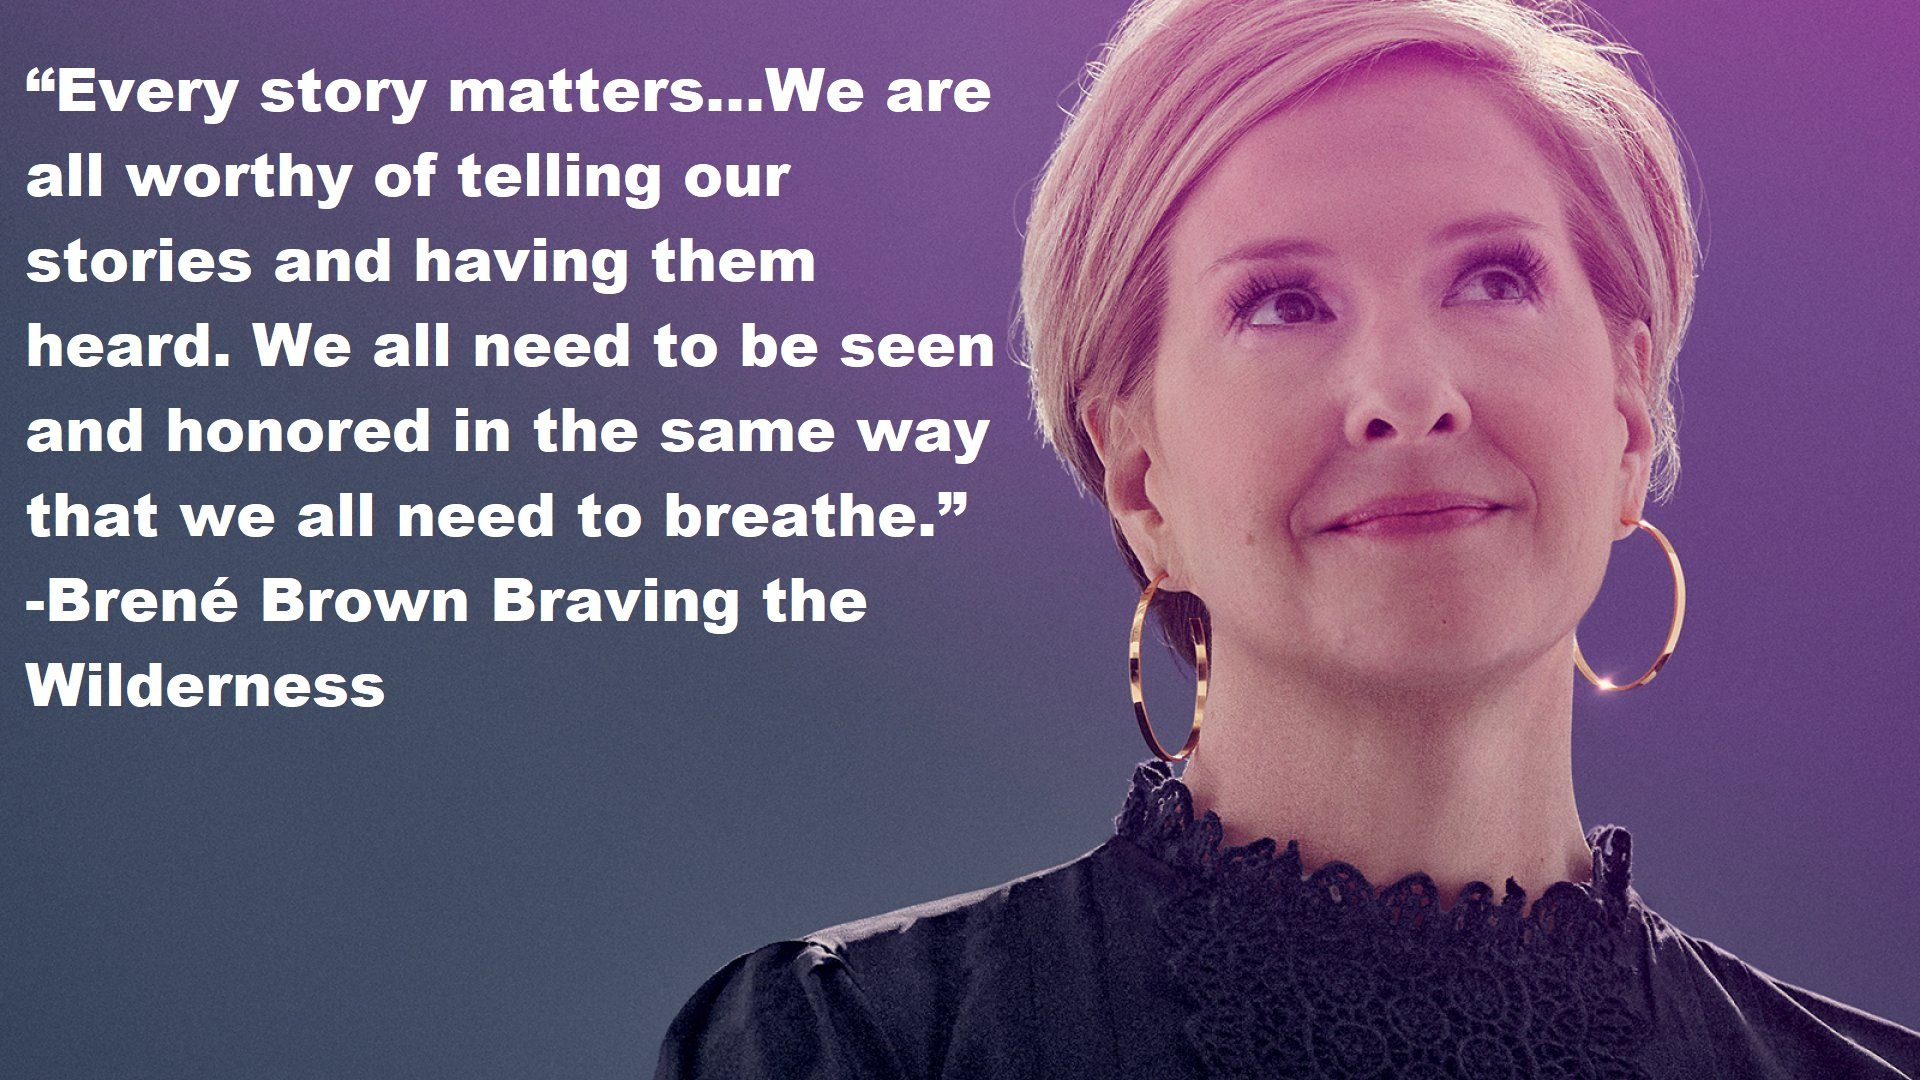 Brene Brown Braving the Wilderness Quotes